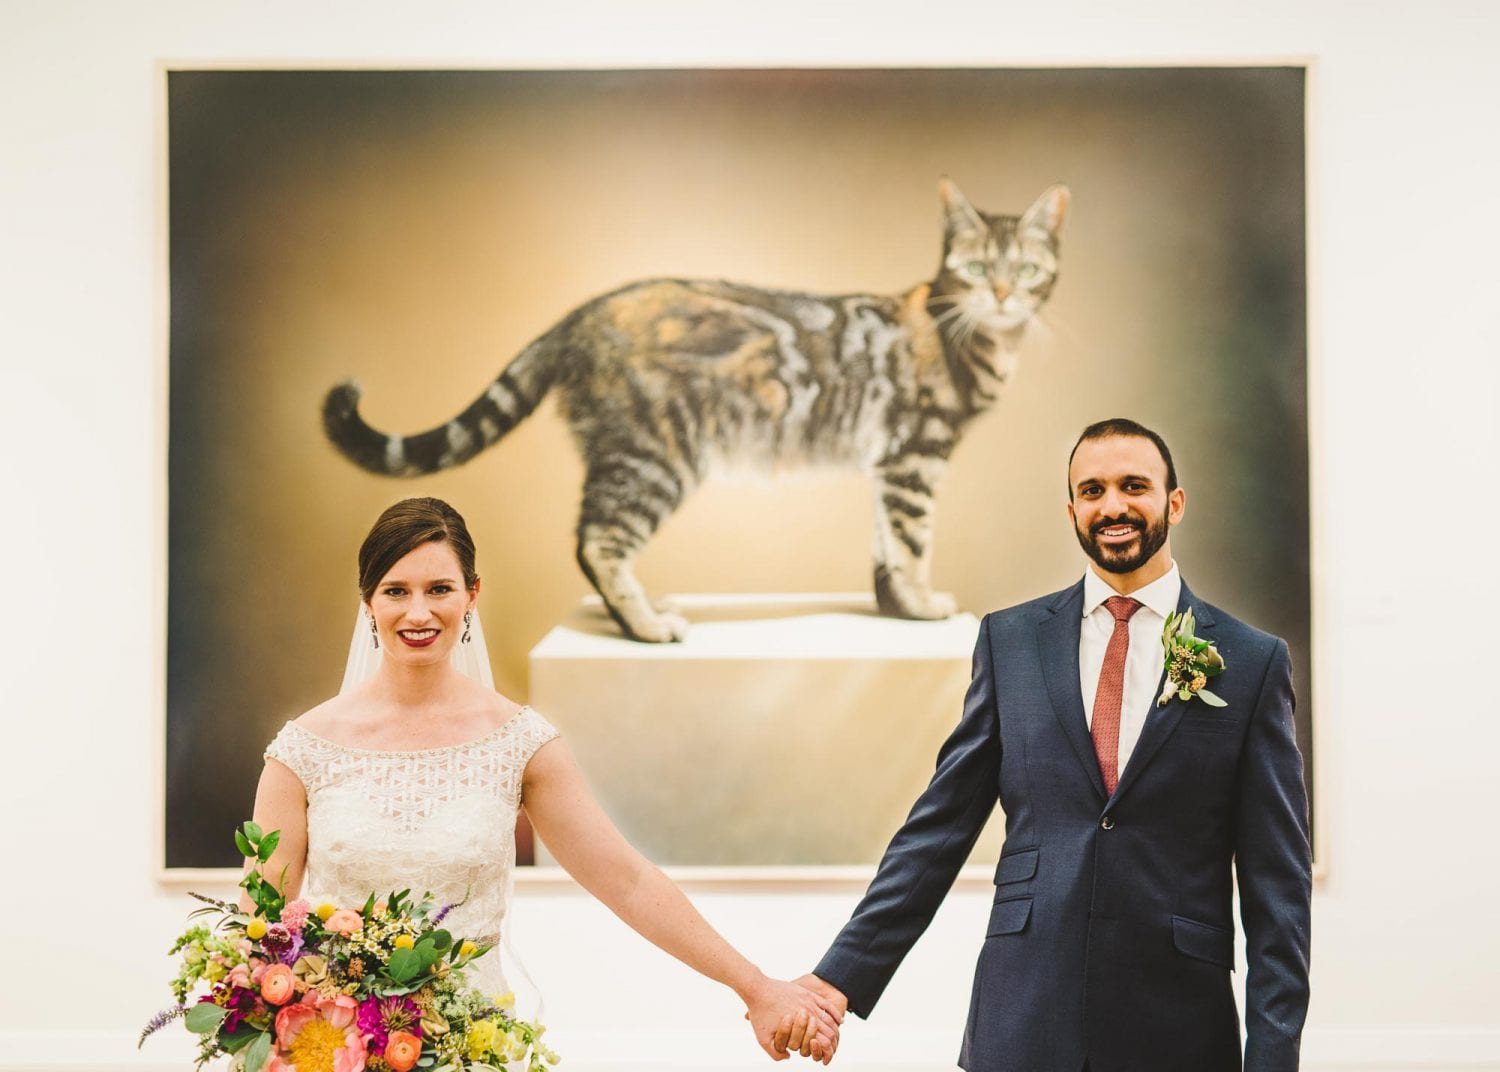 Art museum weddings